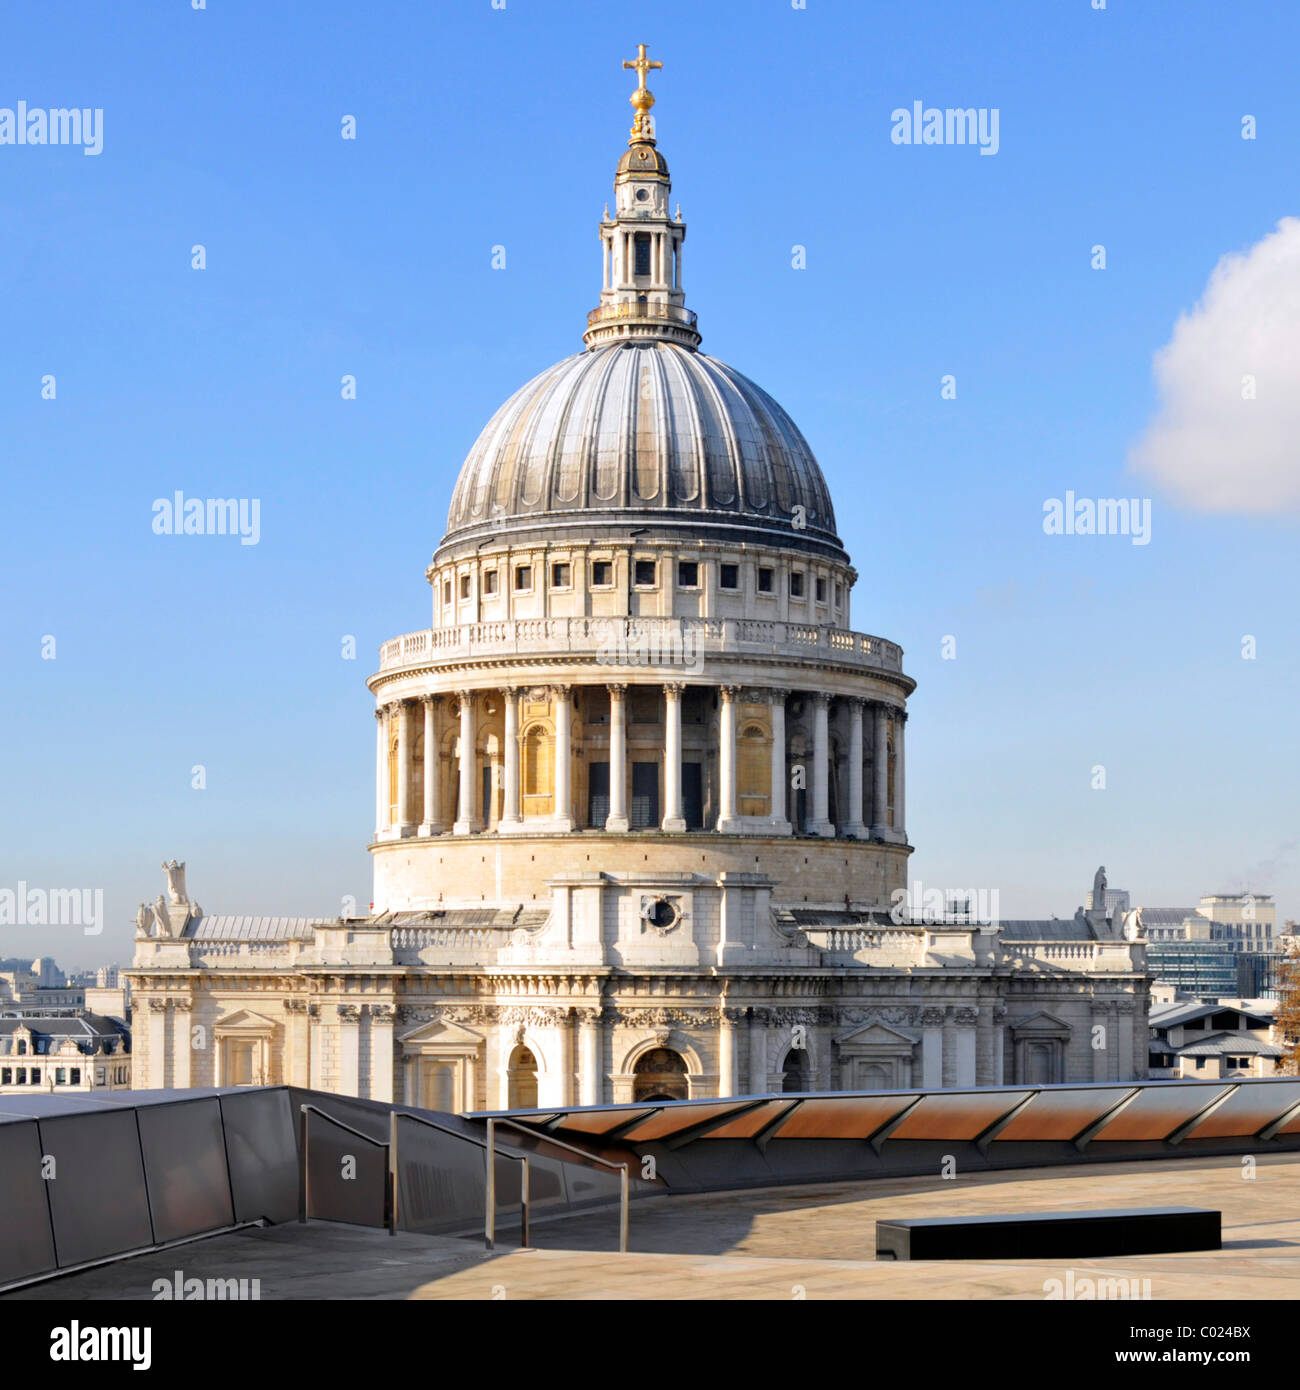 One New Change shopping centre roof terrace & dome of historical iconic St Pauls cathedral European church landmark - Stock Image